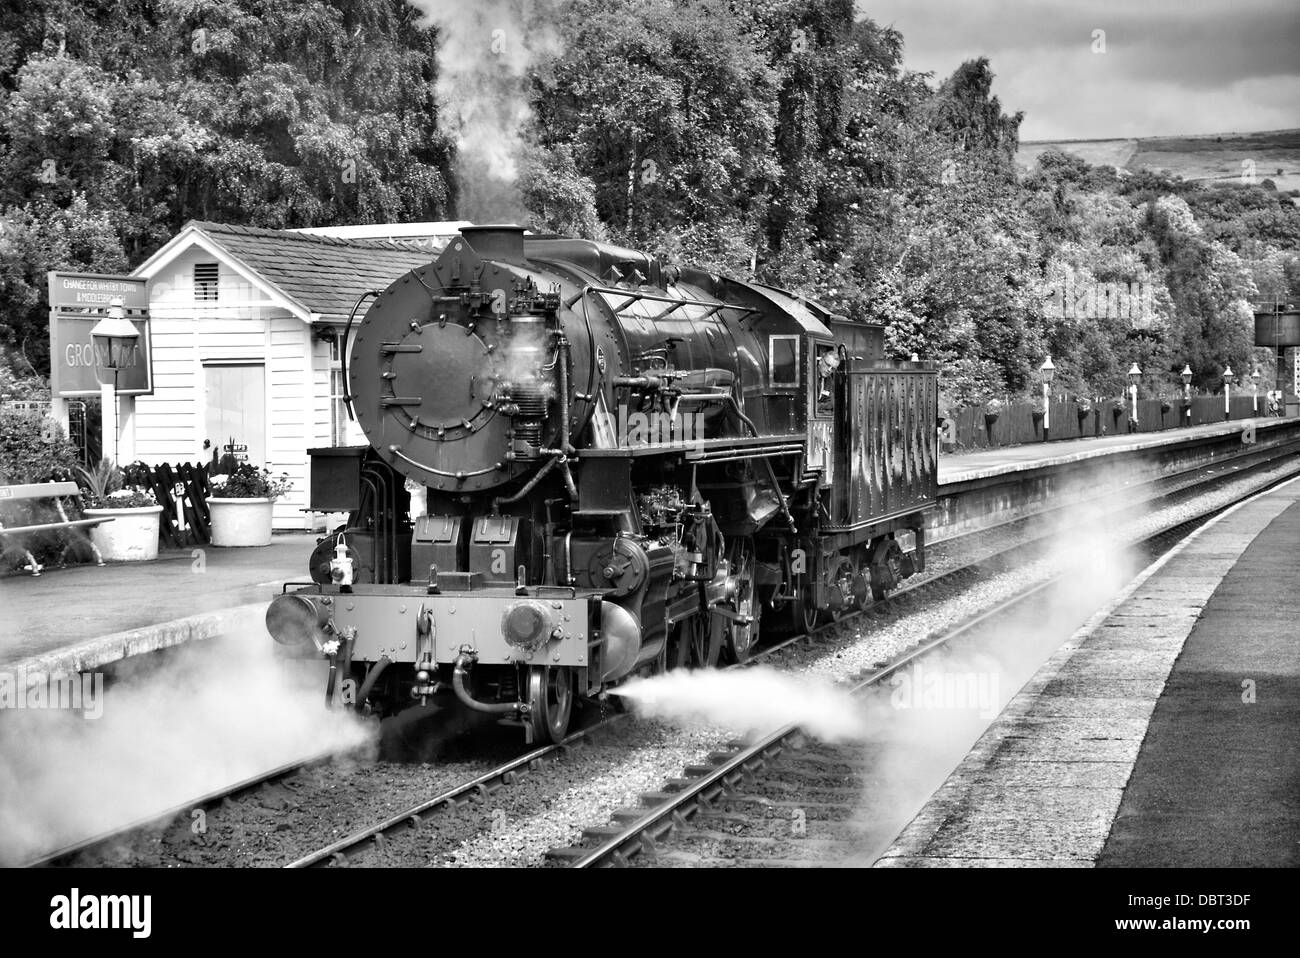 North Yorkshire Moors Railway. American steam locomotive in Grosmont Station - Stock Image